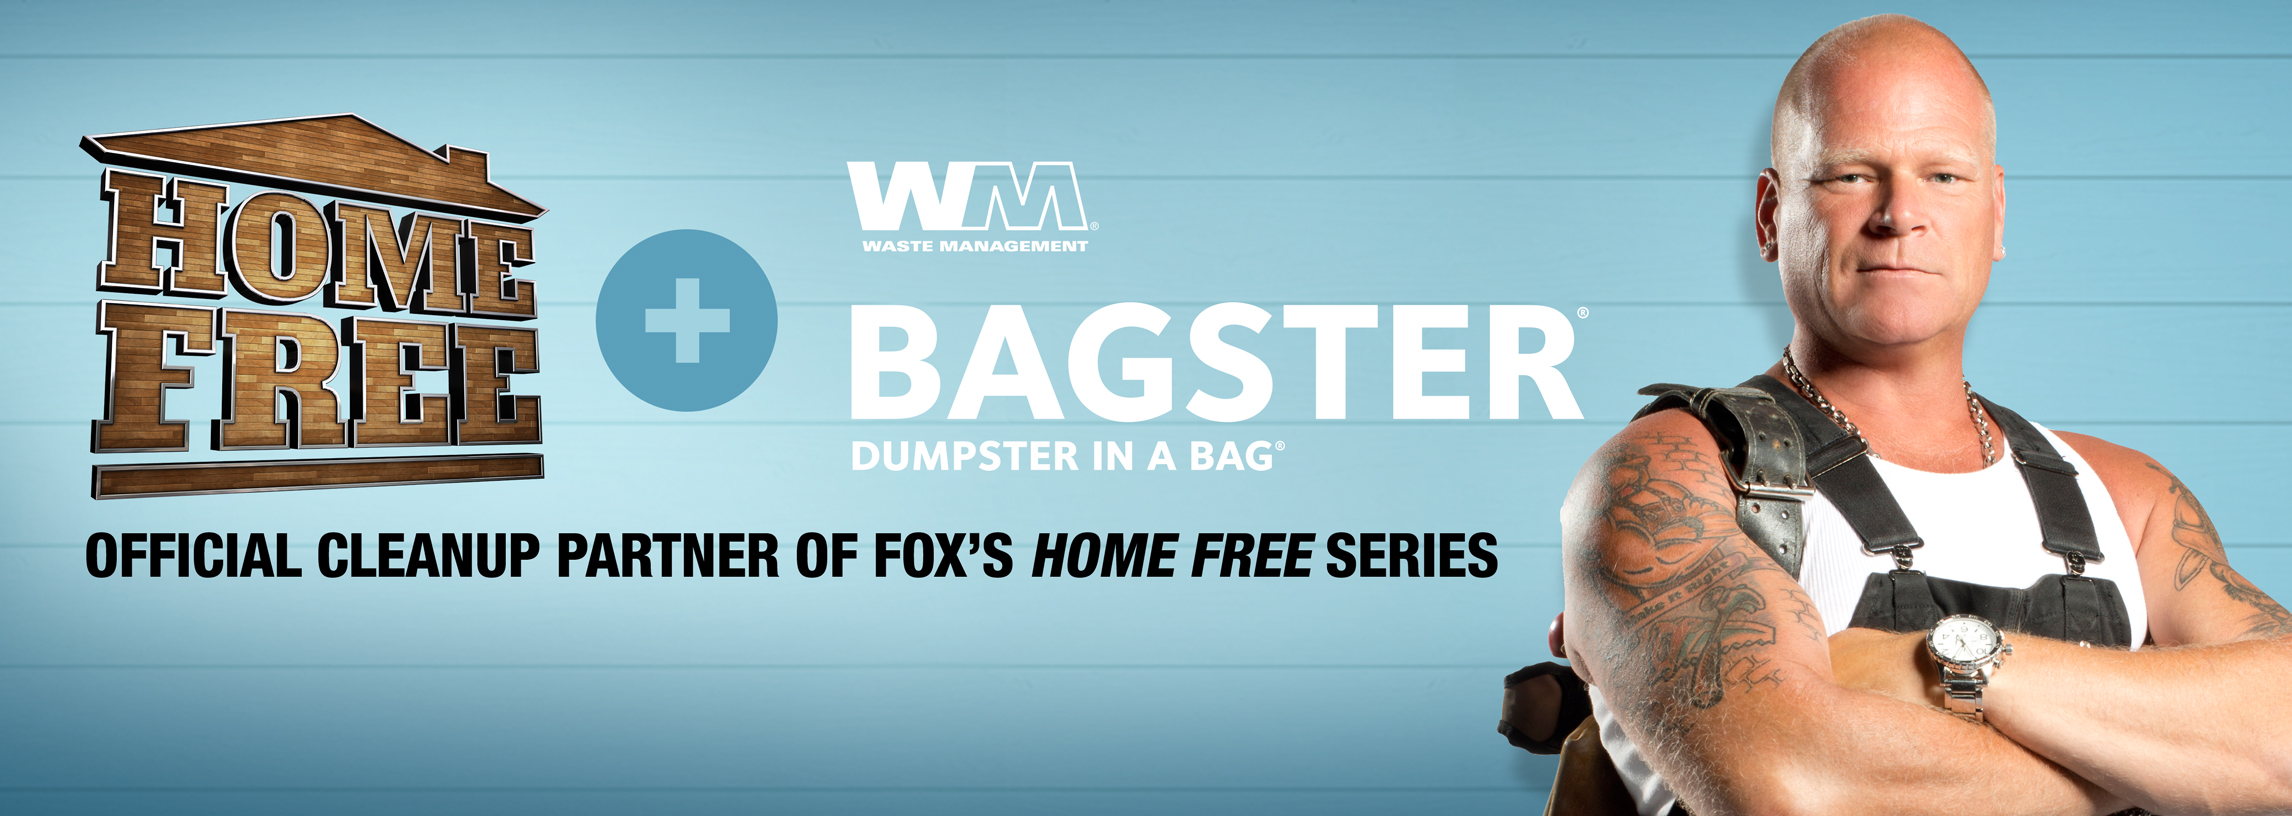 Fox's Home Free Series